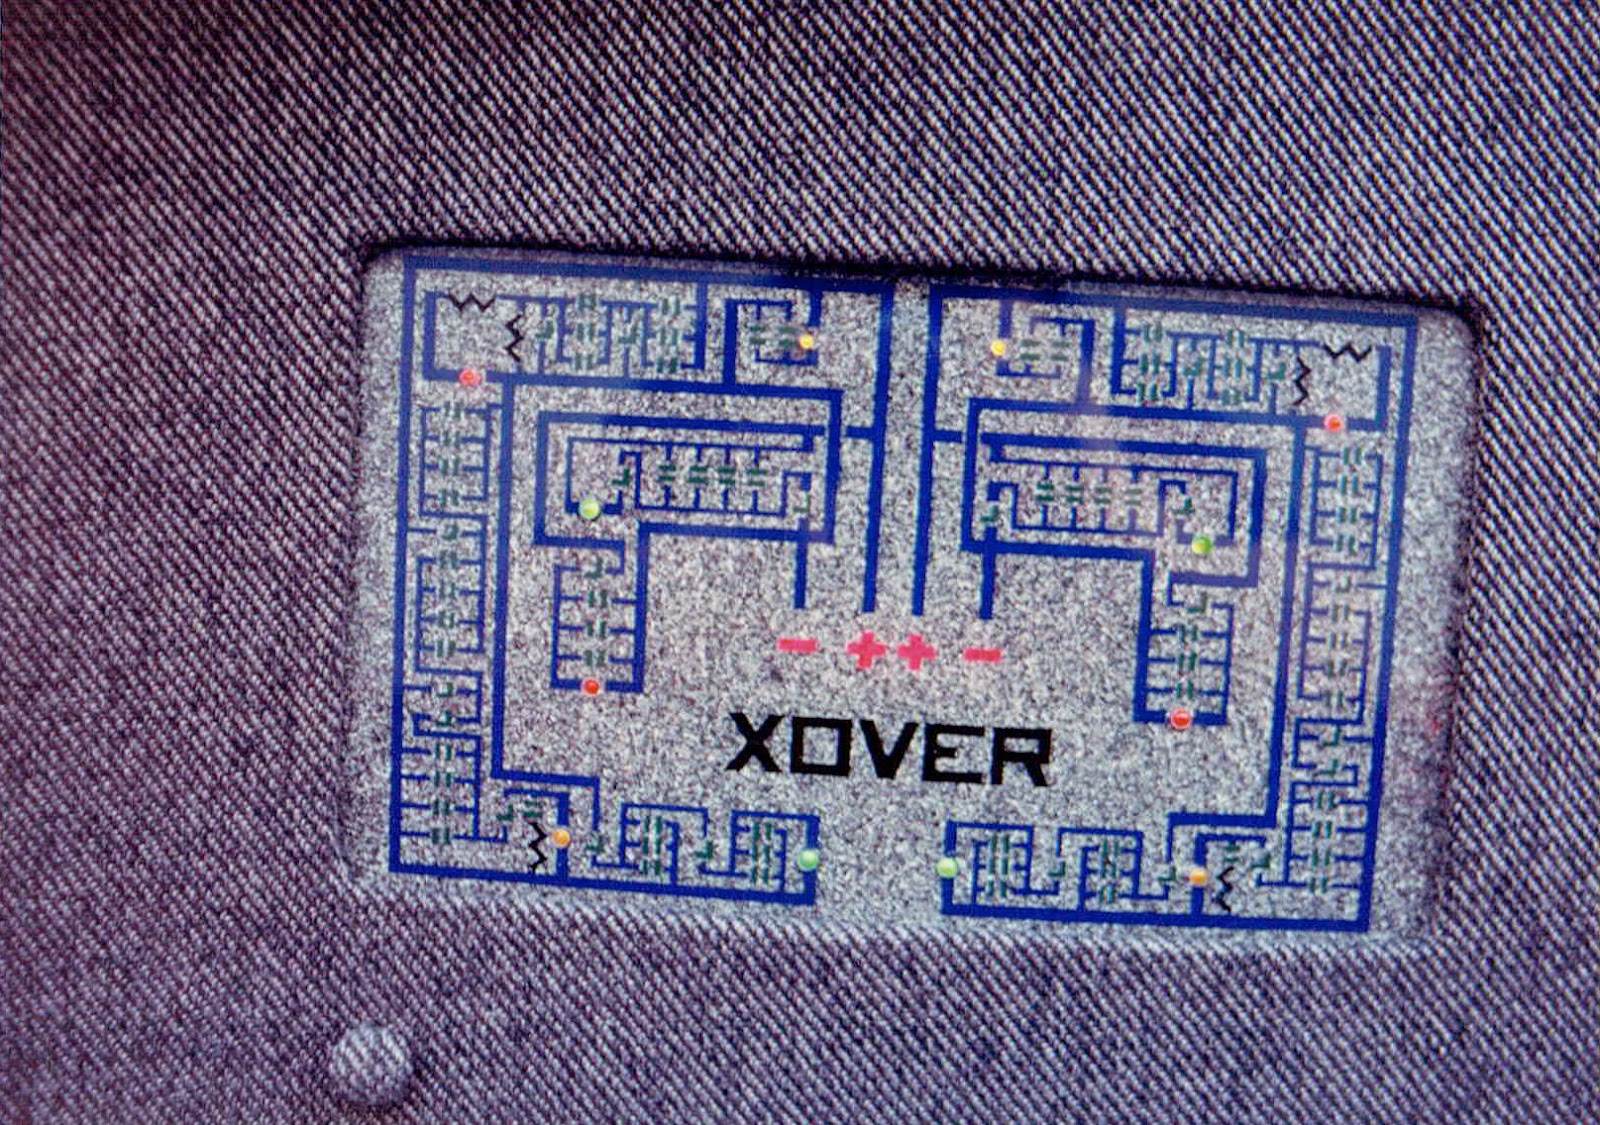 Photo of the passive network diagram under the truck lid in Alberto A Lopez's 1991 Red NIssan Sentra